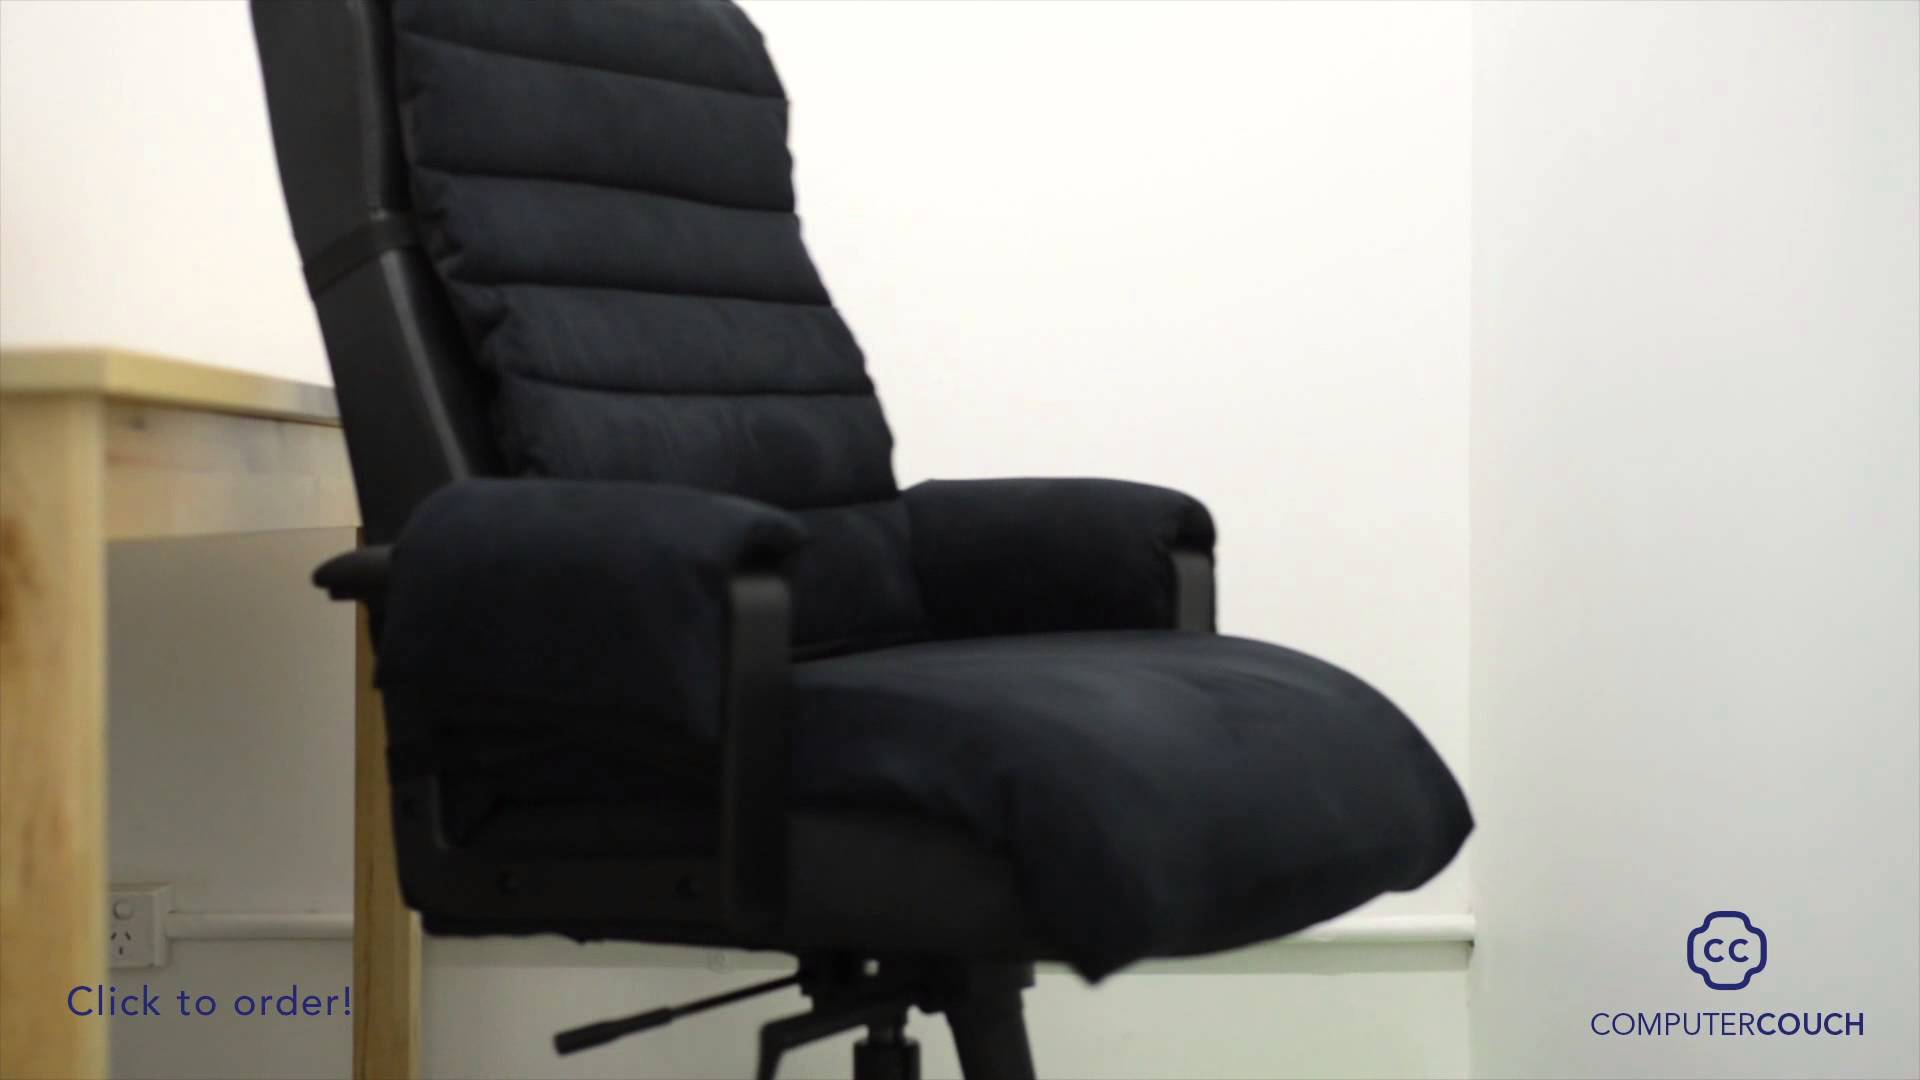 comfortable computer chairs computer couch: turn your computer chair into a comfortable couch. - ZLZSVUU